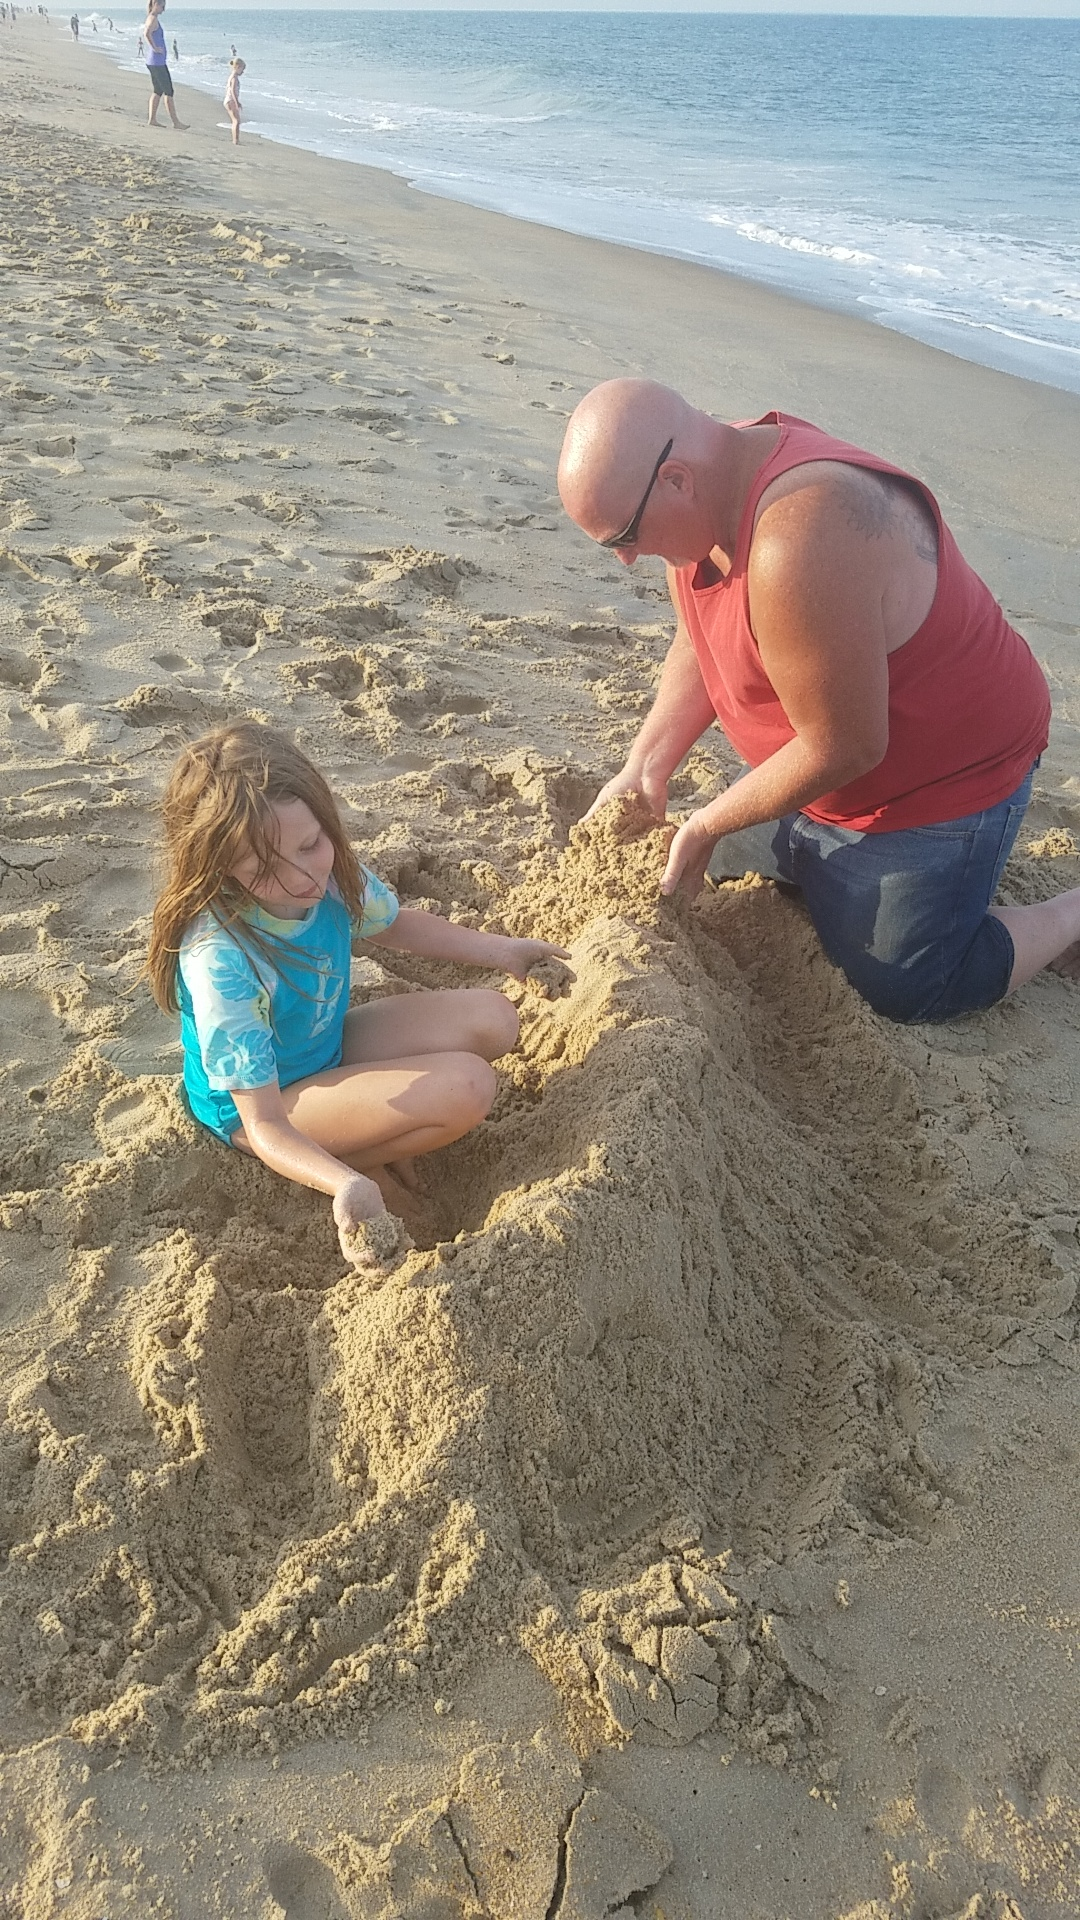 Fenwick Island in Delaware is an excellent place for a family beach vacation. The beautiful coastal town full of water activities, wildlife and much more.